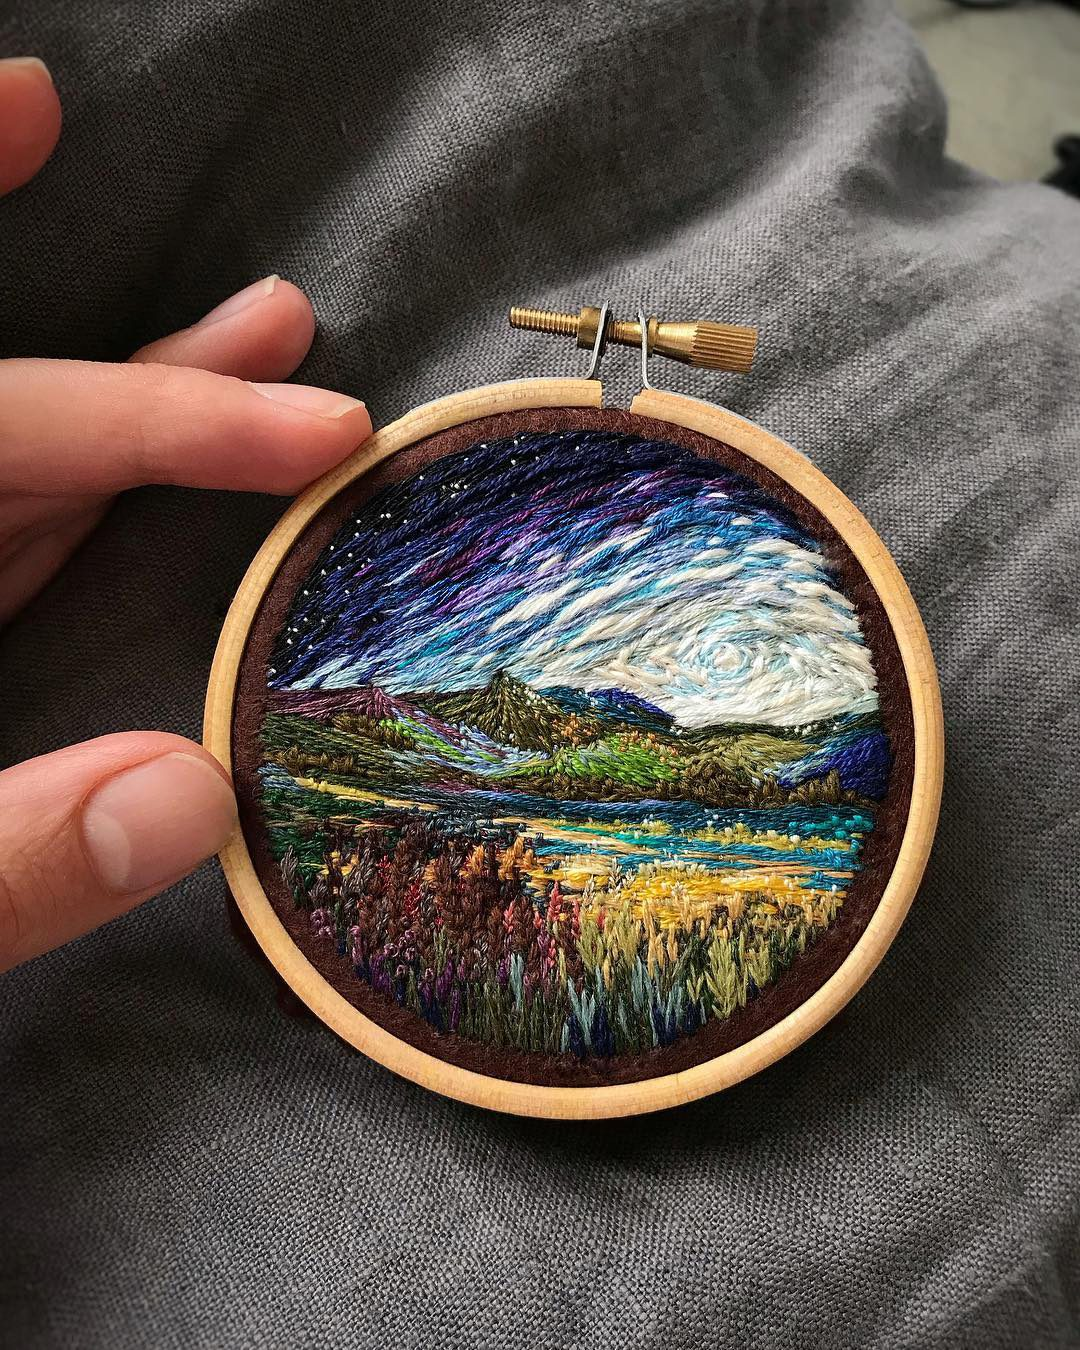 Vera Shimunia Cross Stitching Milkyway